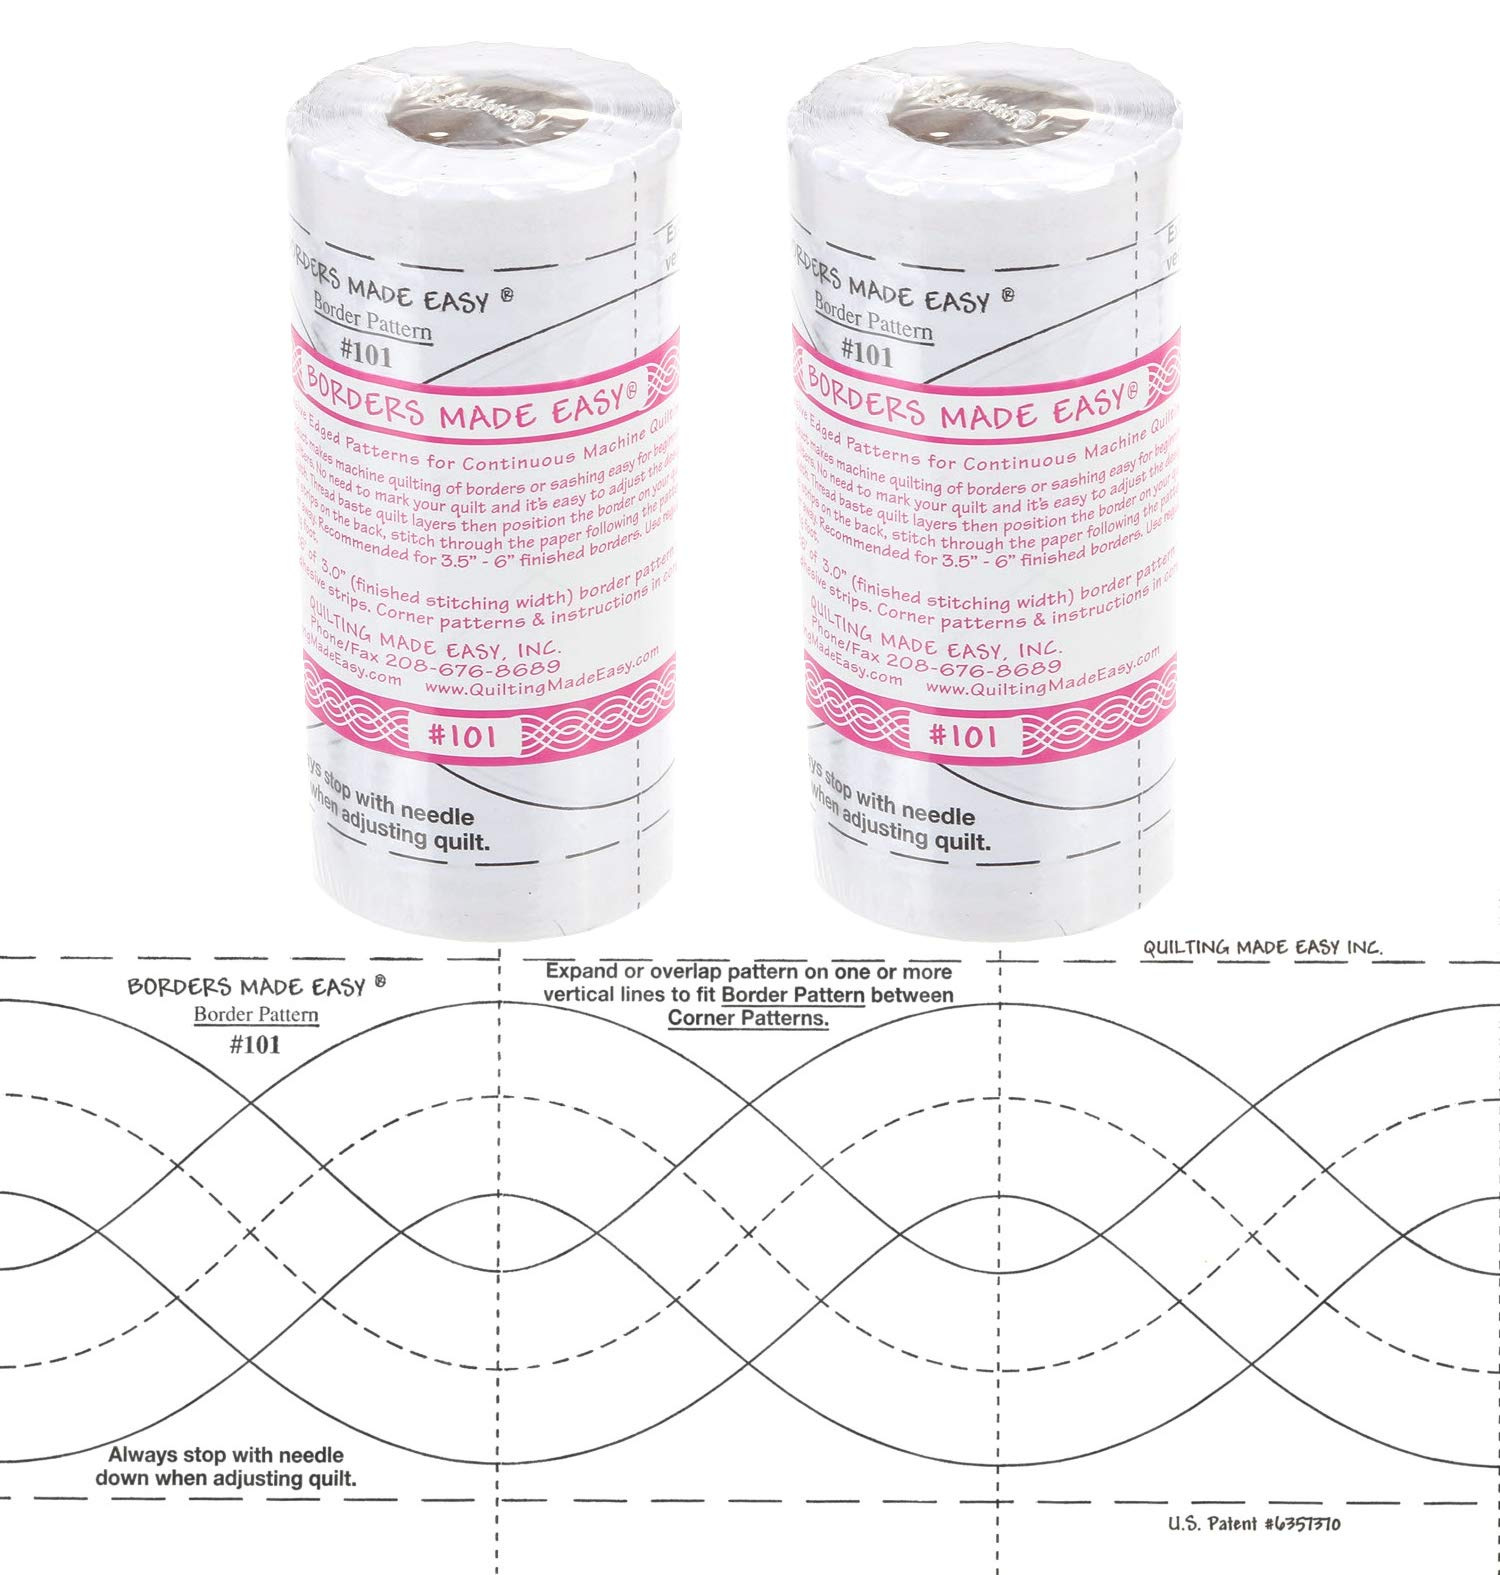 Bundle of 2 Packages of Borders Made Easy Adhesive Backed Patterns for Continuous Machine Quilting, Includes Corners, 26 feet by 1 3/4 inches & 3 inches, Pattern No. 101 by BORDERS MADE EASY